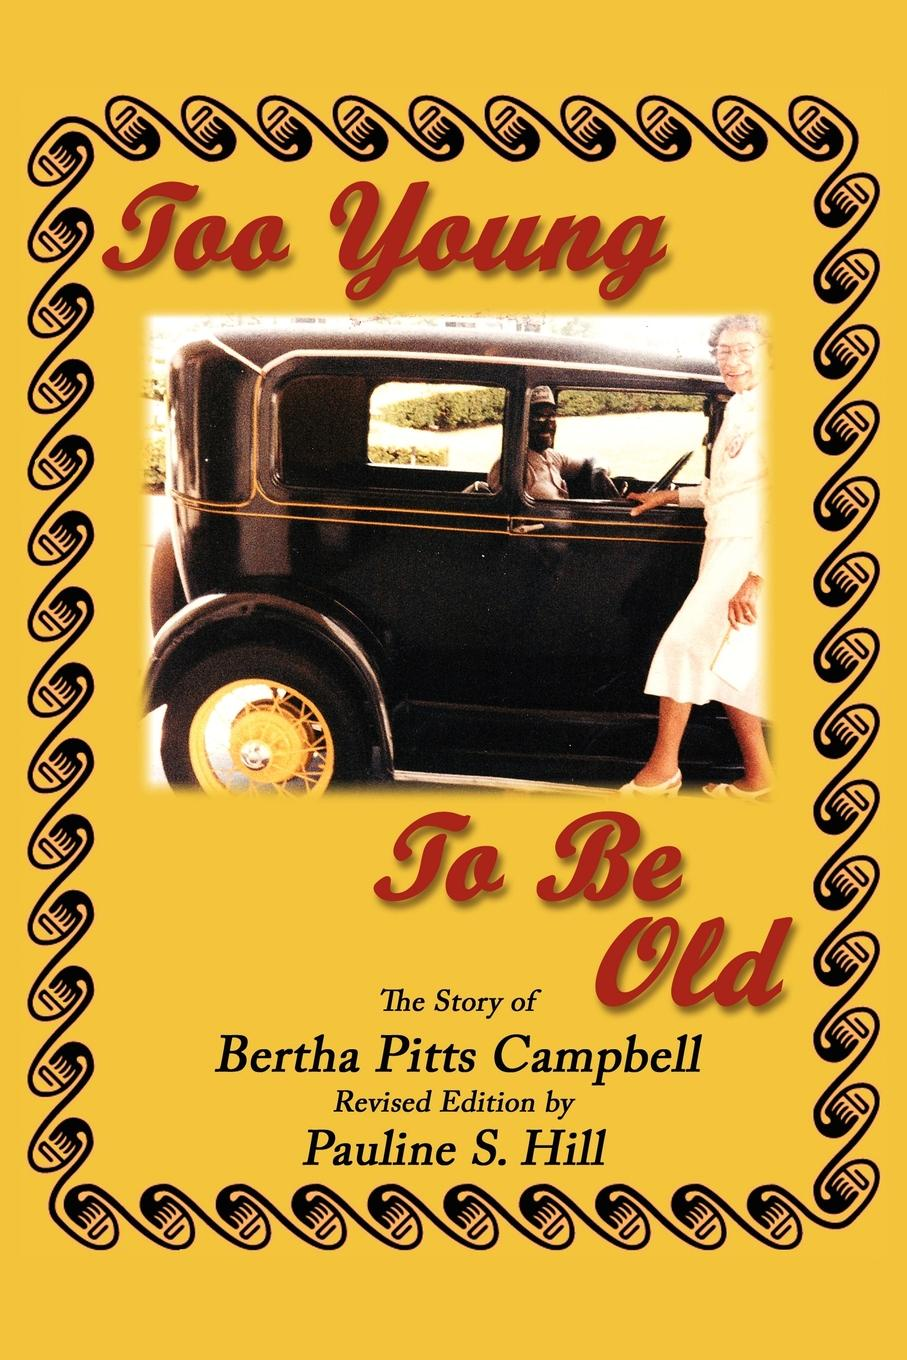 Pauline S. Hill Too Young to Be Old. The Story of Bertha Pitts Campbell mr andrew yie roberts pitts